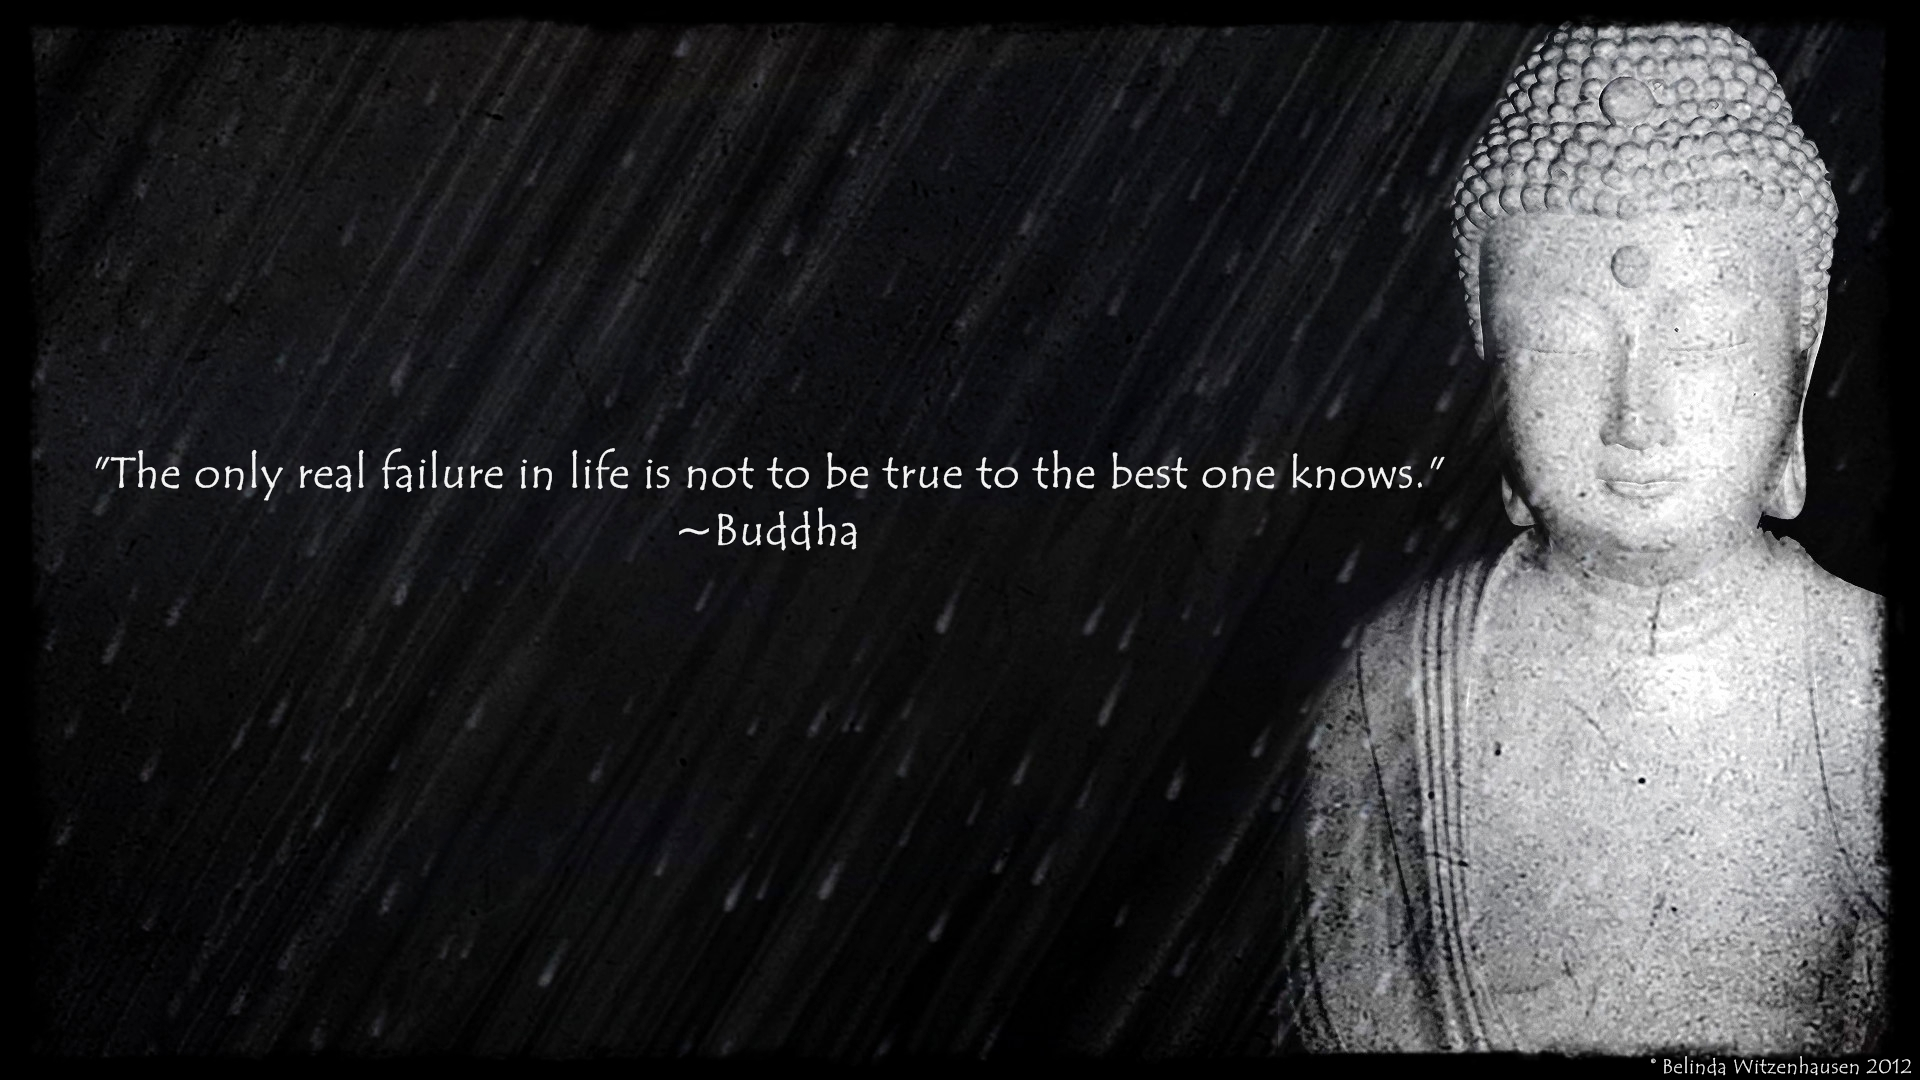 Free Download Buddha Wallpaper 1920x1080 For Your Desktop